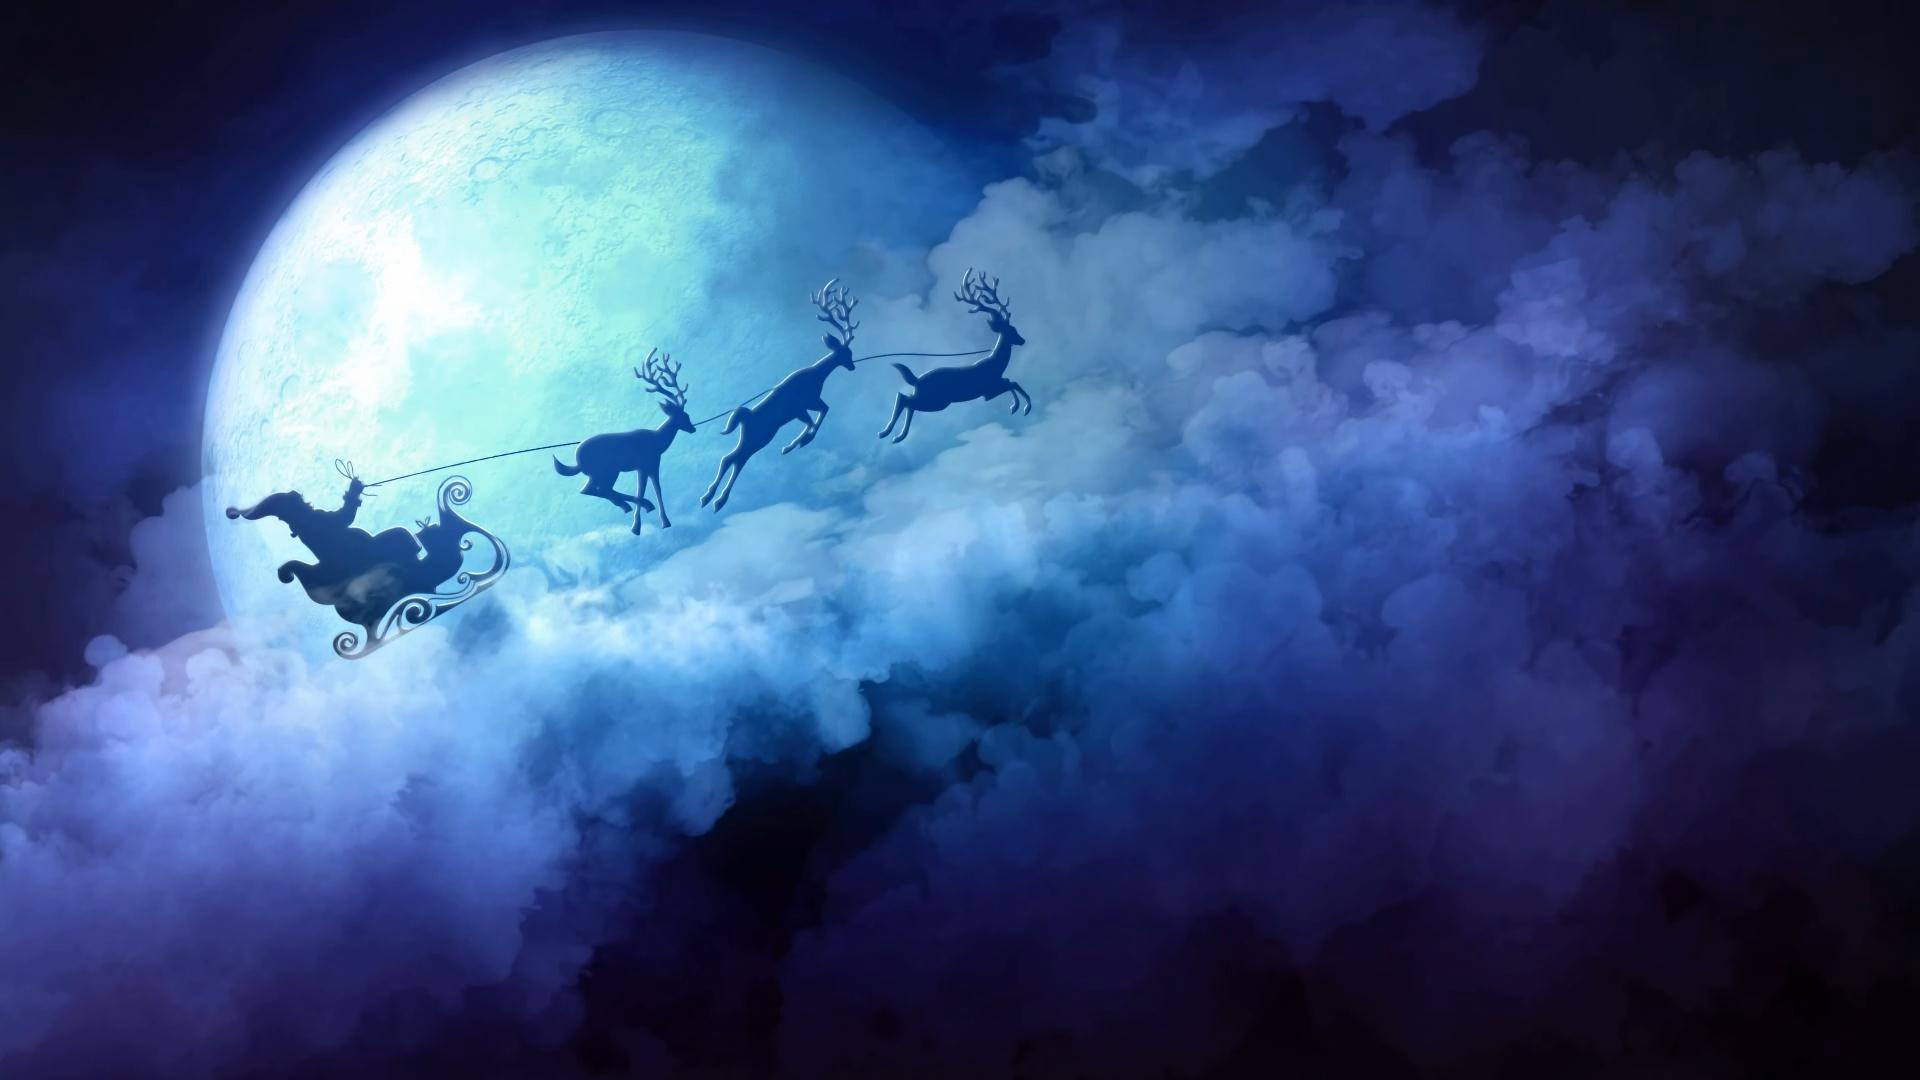 40 Animated Christmas Wallpapers For 2015